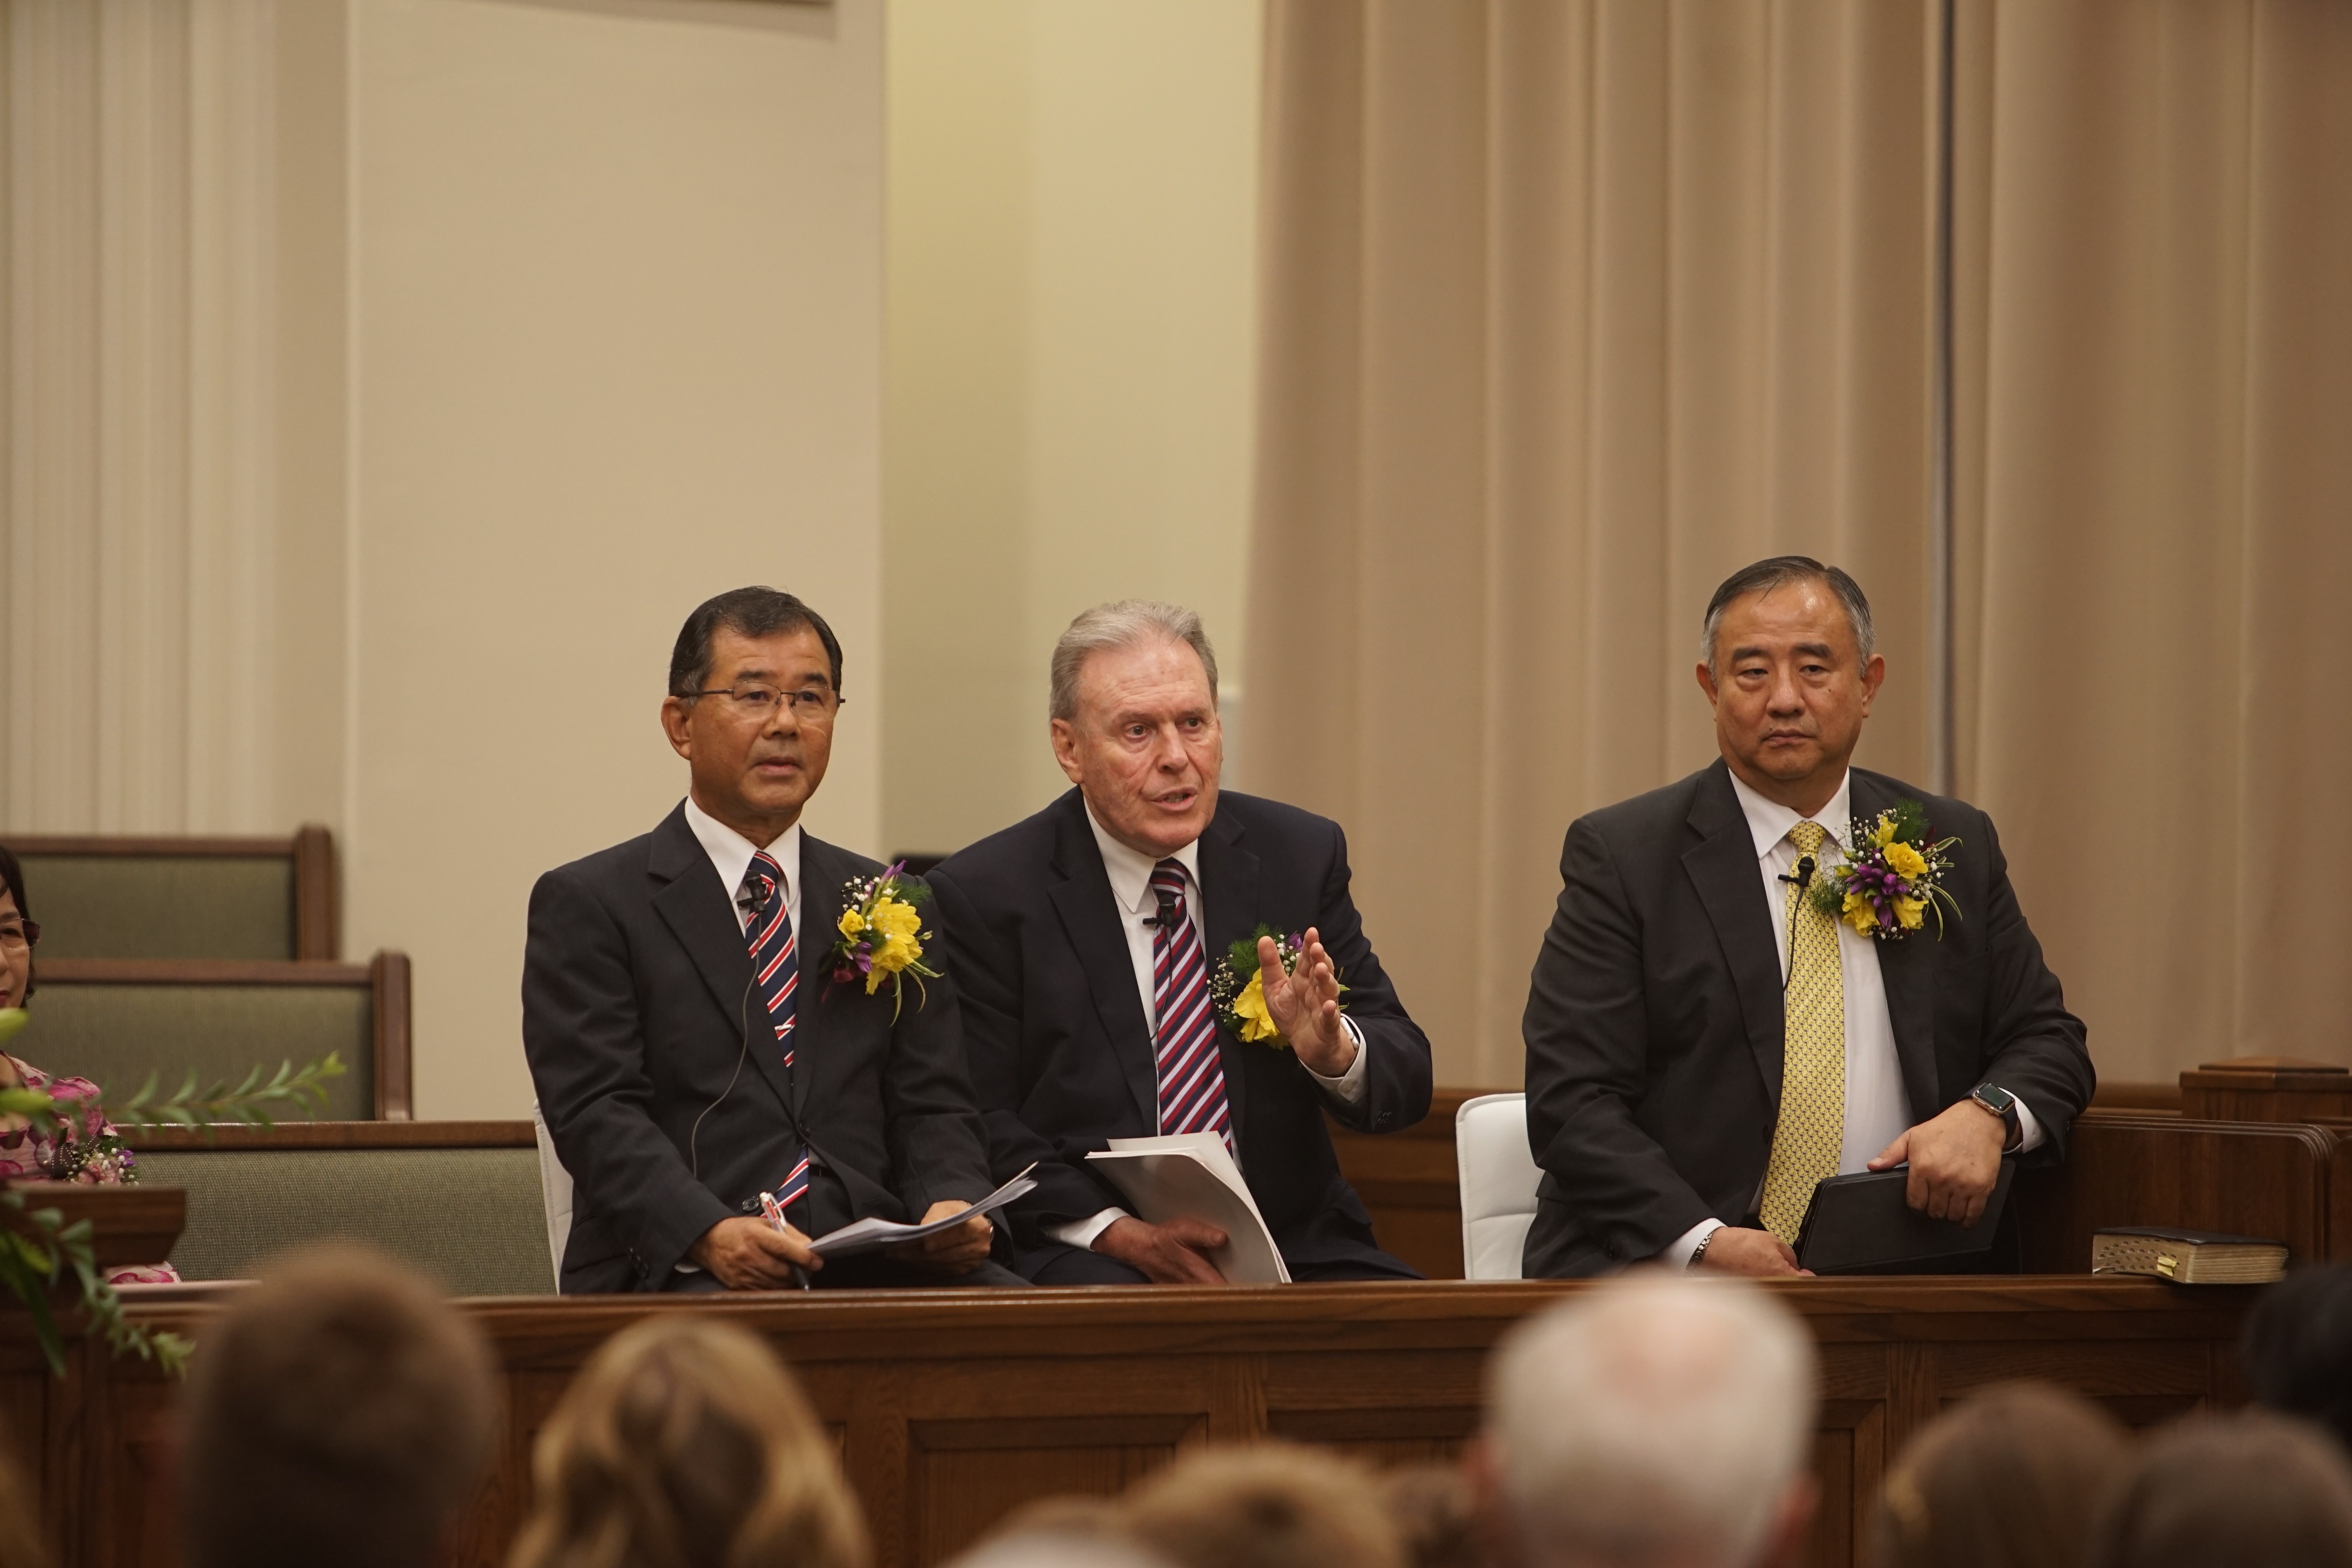 Elder Terence M. Vinson, center, and Elder Yoon Hwan Choi, right, participate in a member devotional in Okinawa, Japan, on Aug. 30, 2019.